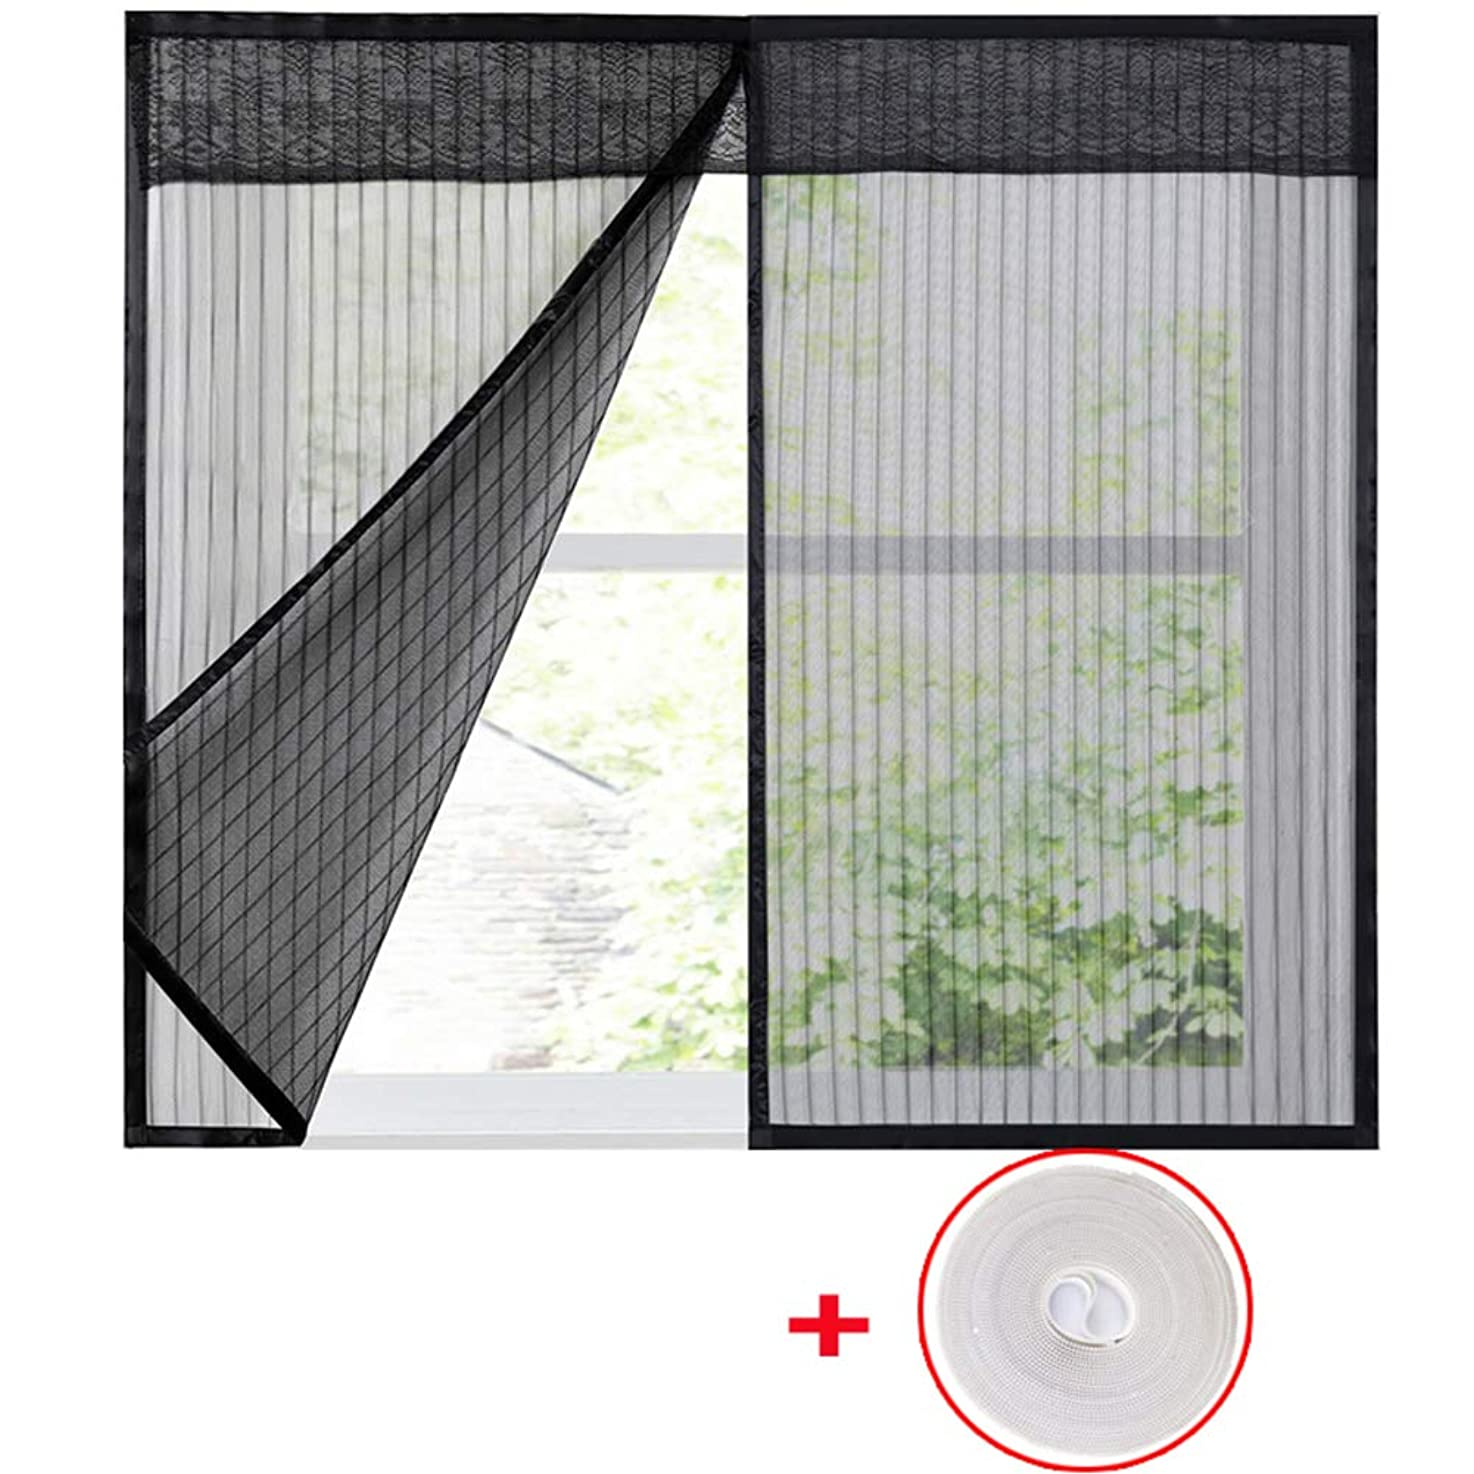 WYMNAME Window screen mesh curtain, Mosquito netting mesh screen protector Window netting mosquito net Fitted to multiple windows-black 100x150cm(39x59inch)